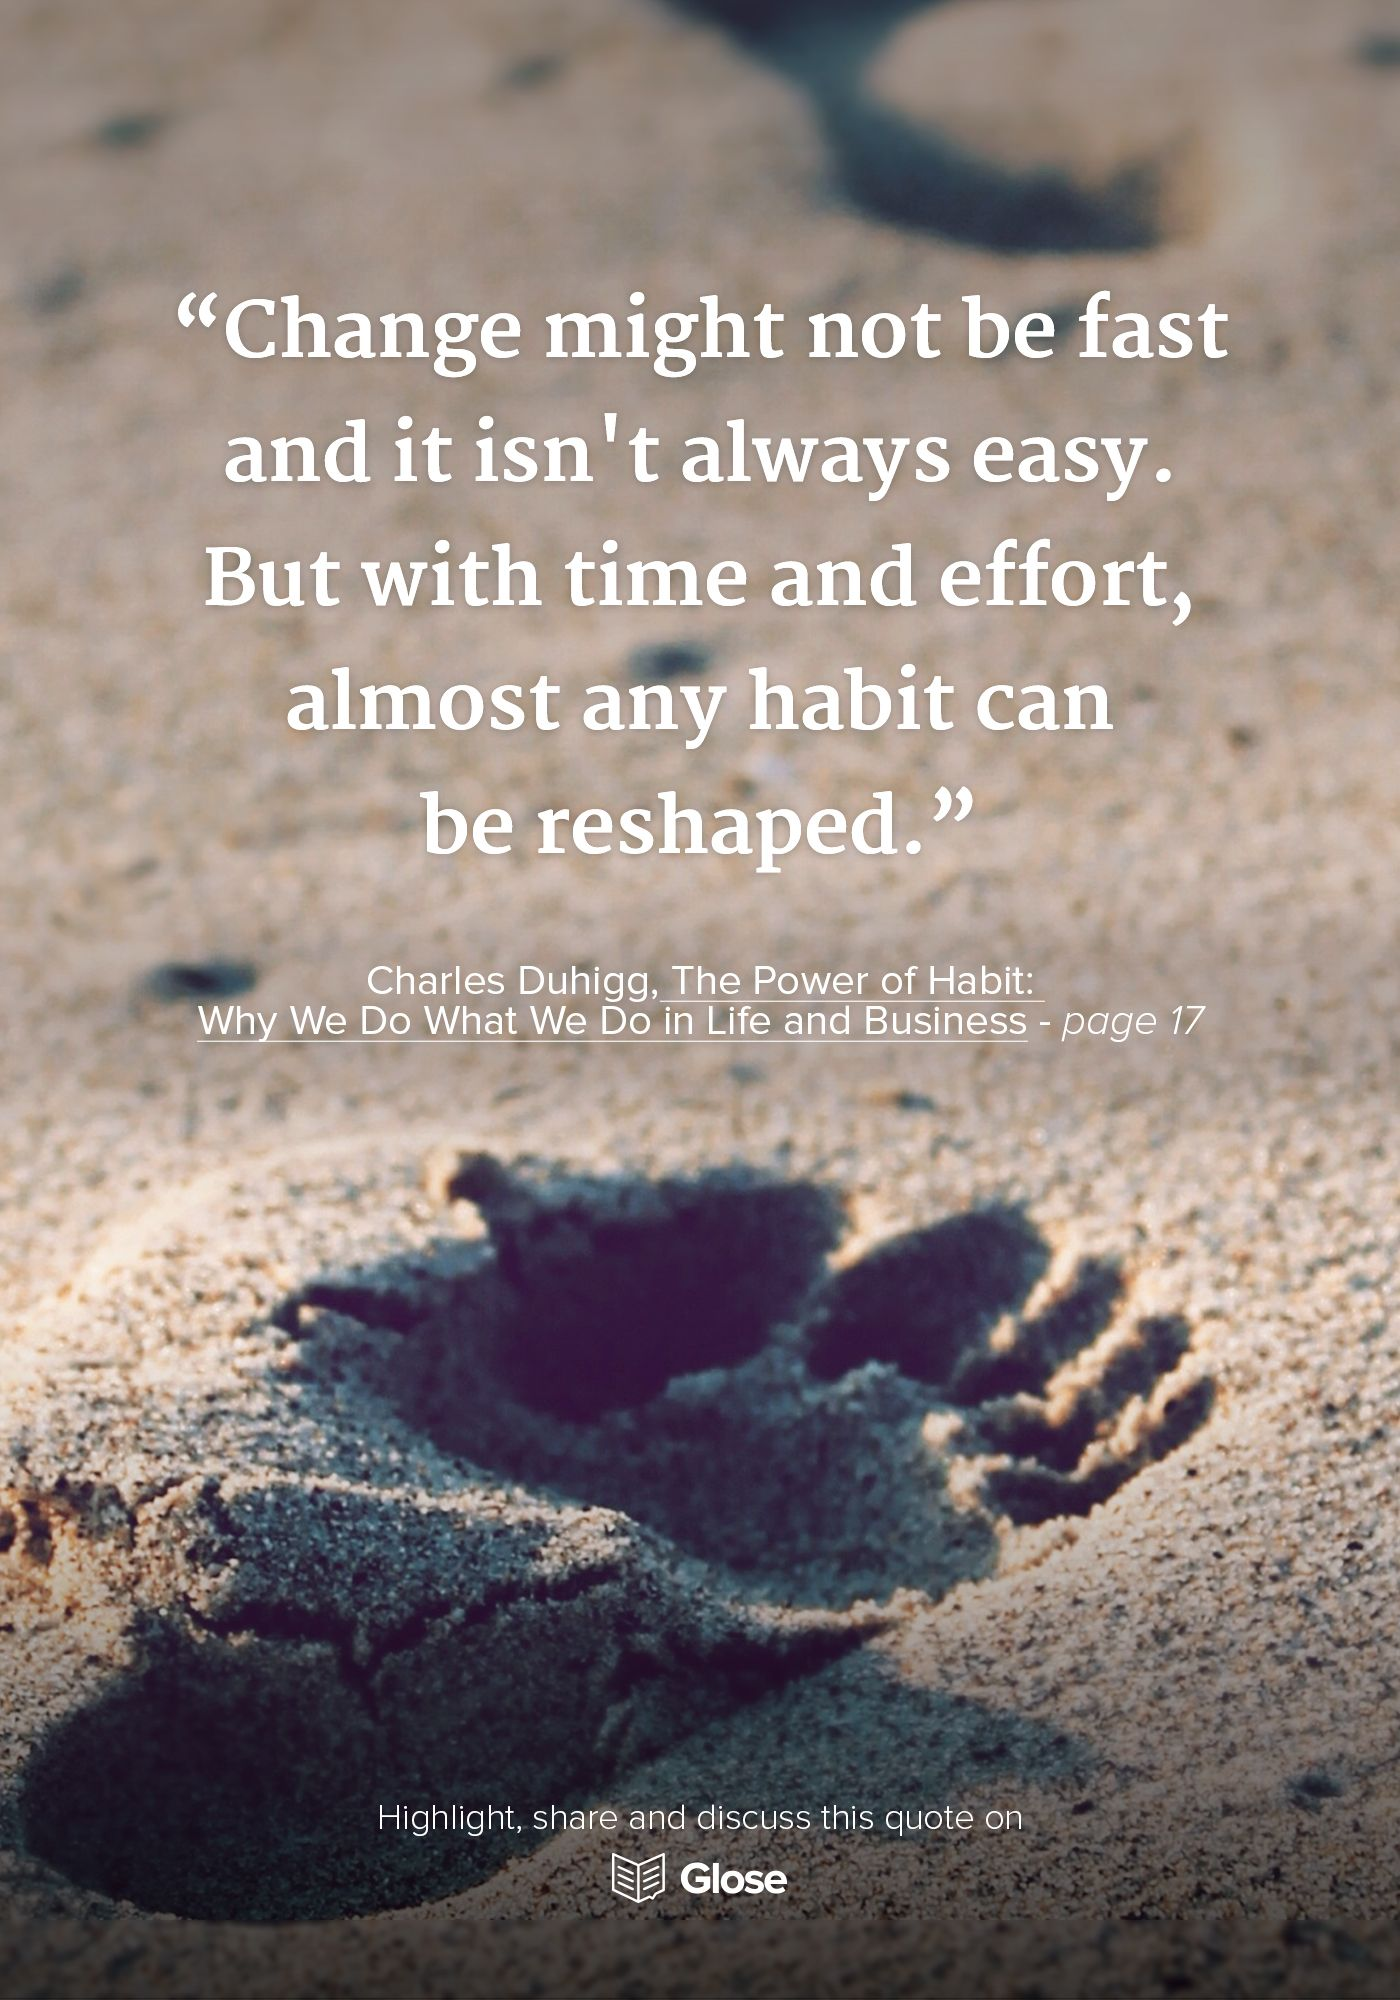 Habit Quotes Charles Duhigg The Power Of Habit  Why We Do What We Do In Life